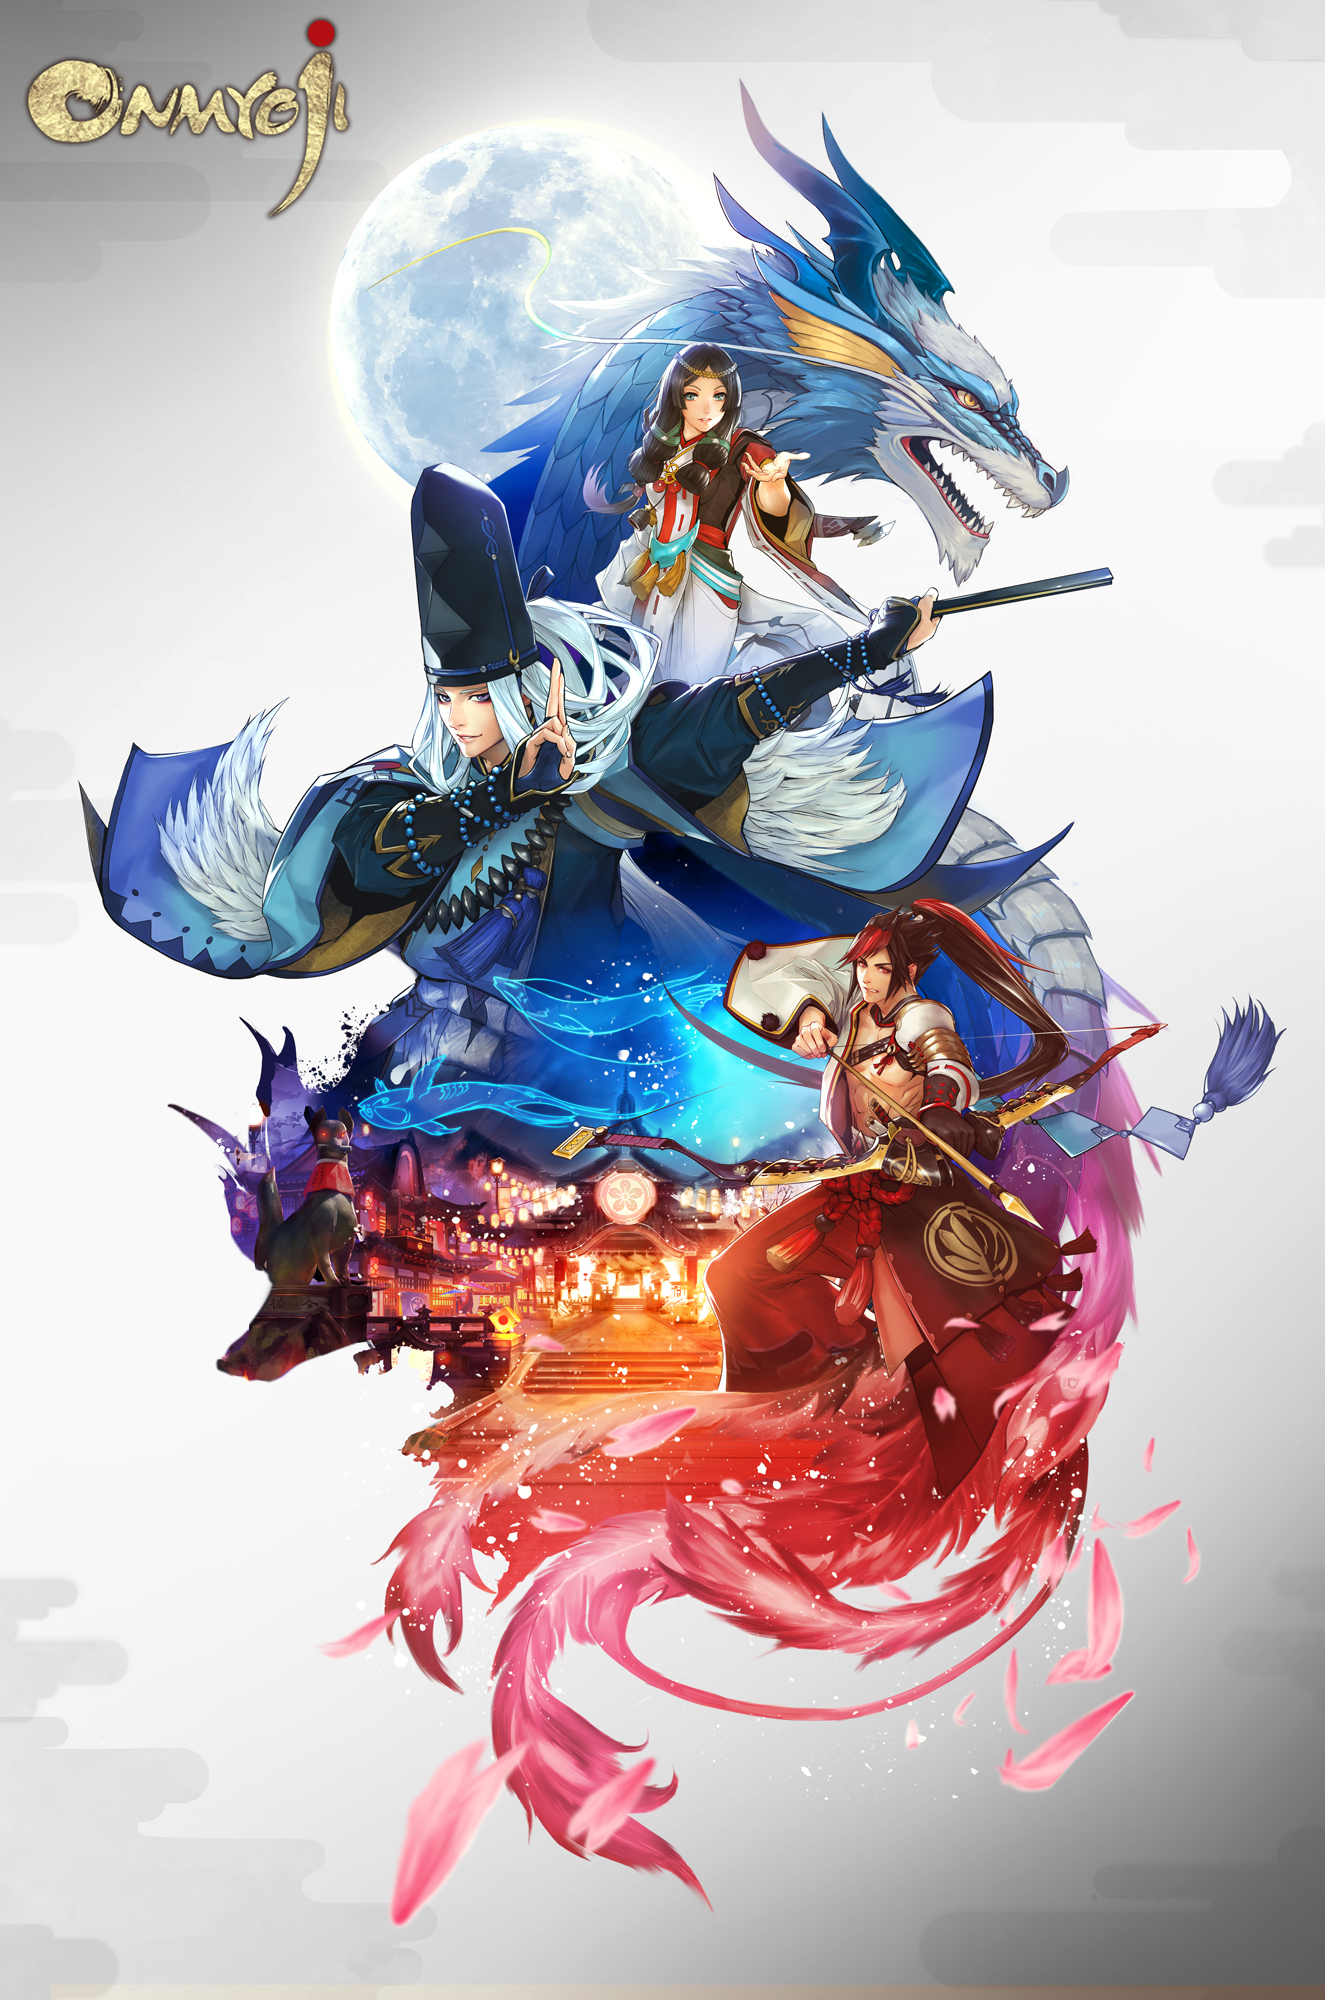 Fall Wallpaper For Windows 10 Onmyoji Soft Launches In English To Selected Countries